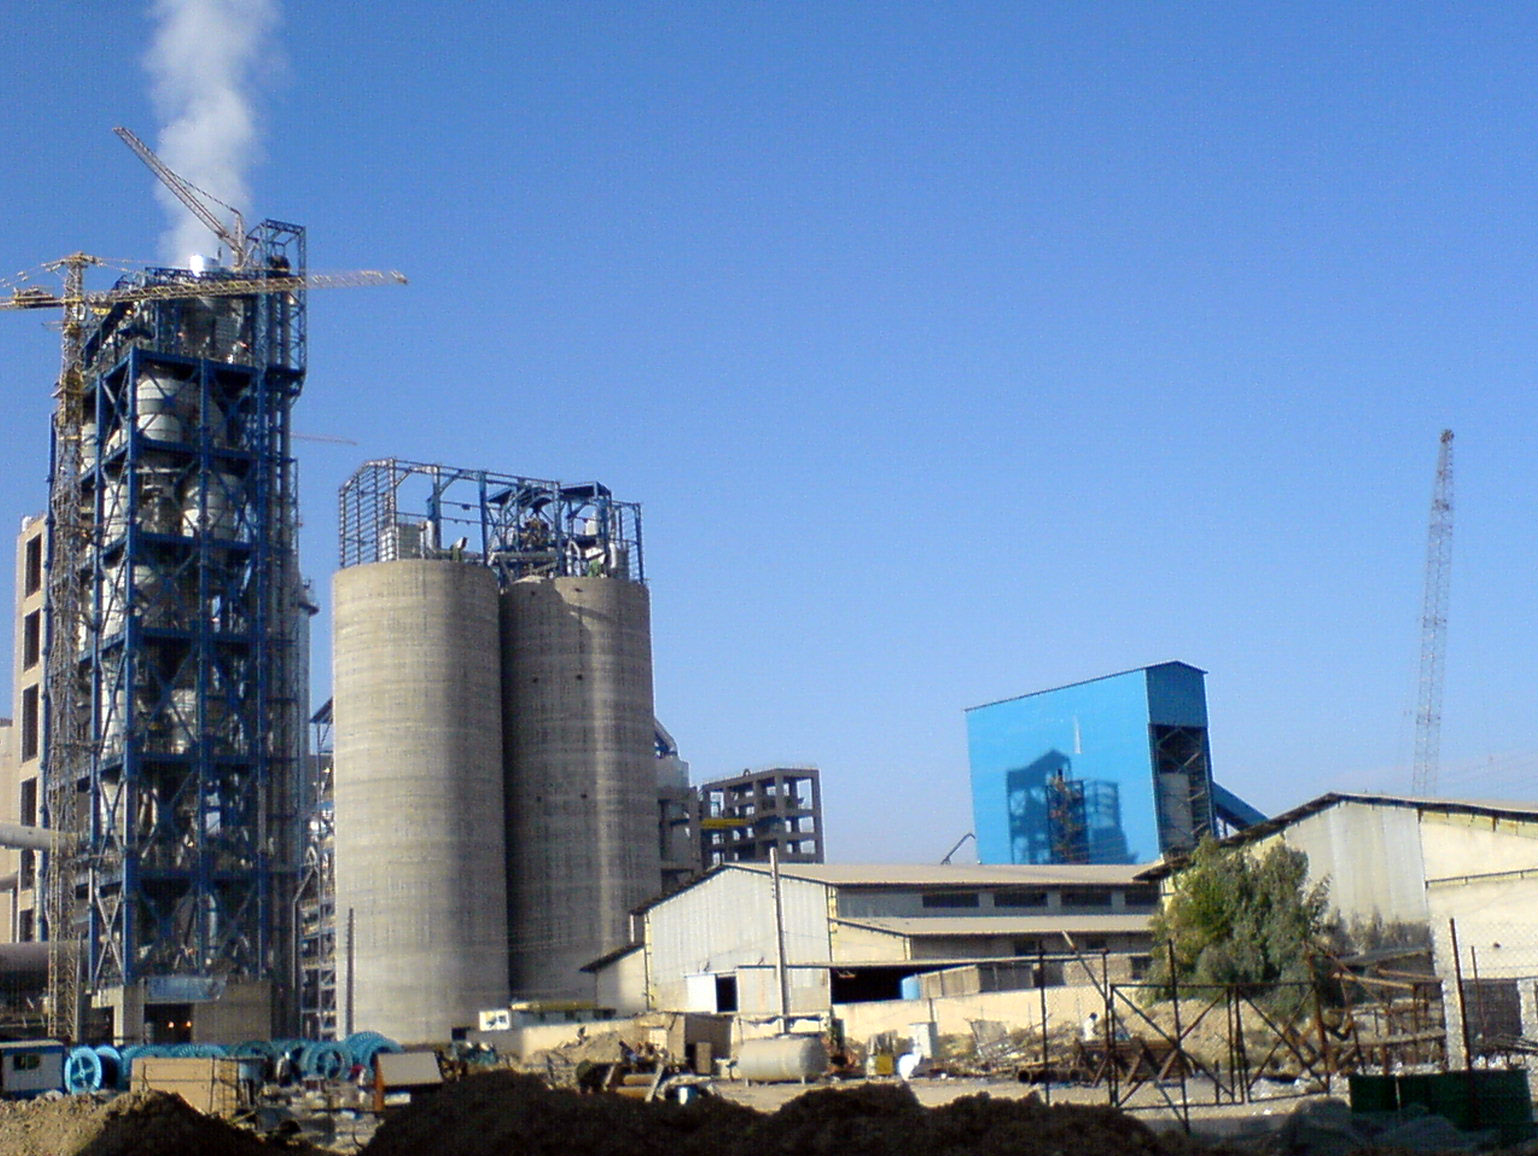 report on mini cement plant using Cement sector trends in beneficial use of alternative fuels and raw materials 1 interviewed cement plant contacts tires was conducted for this report.